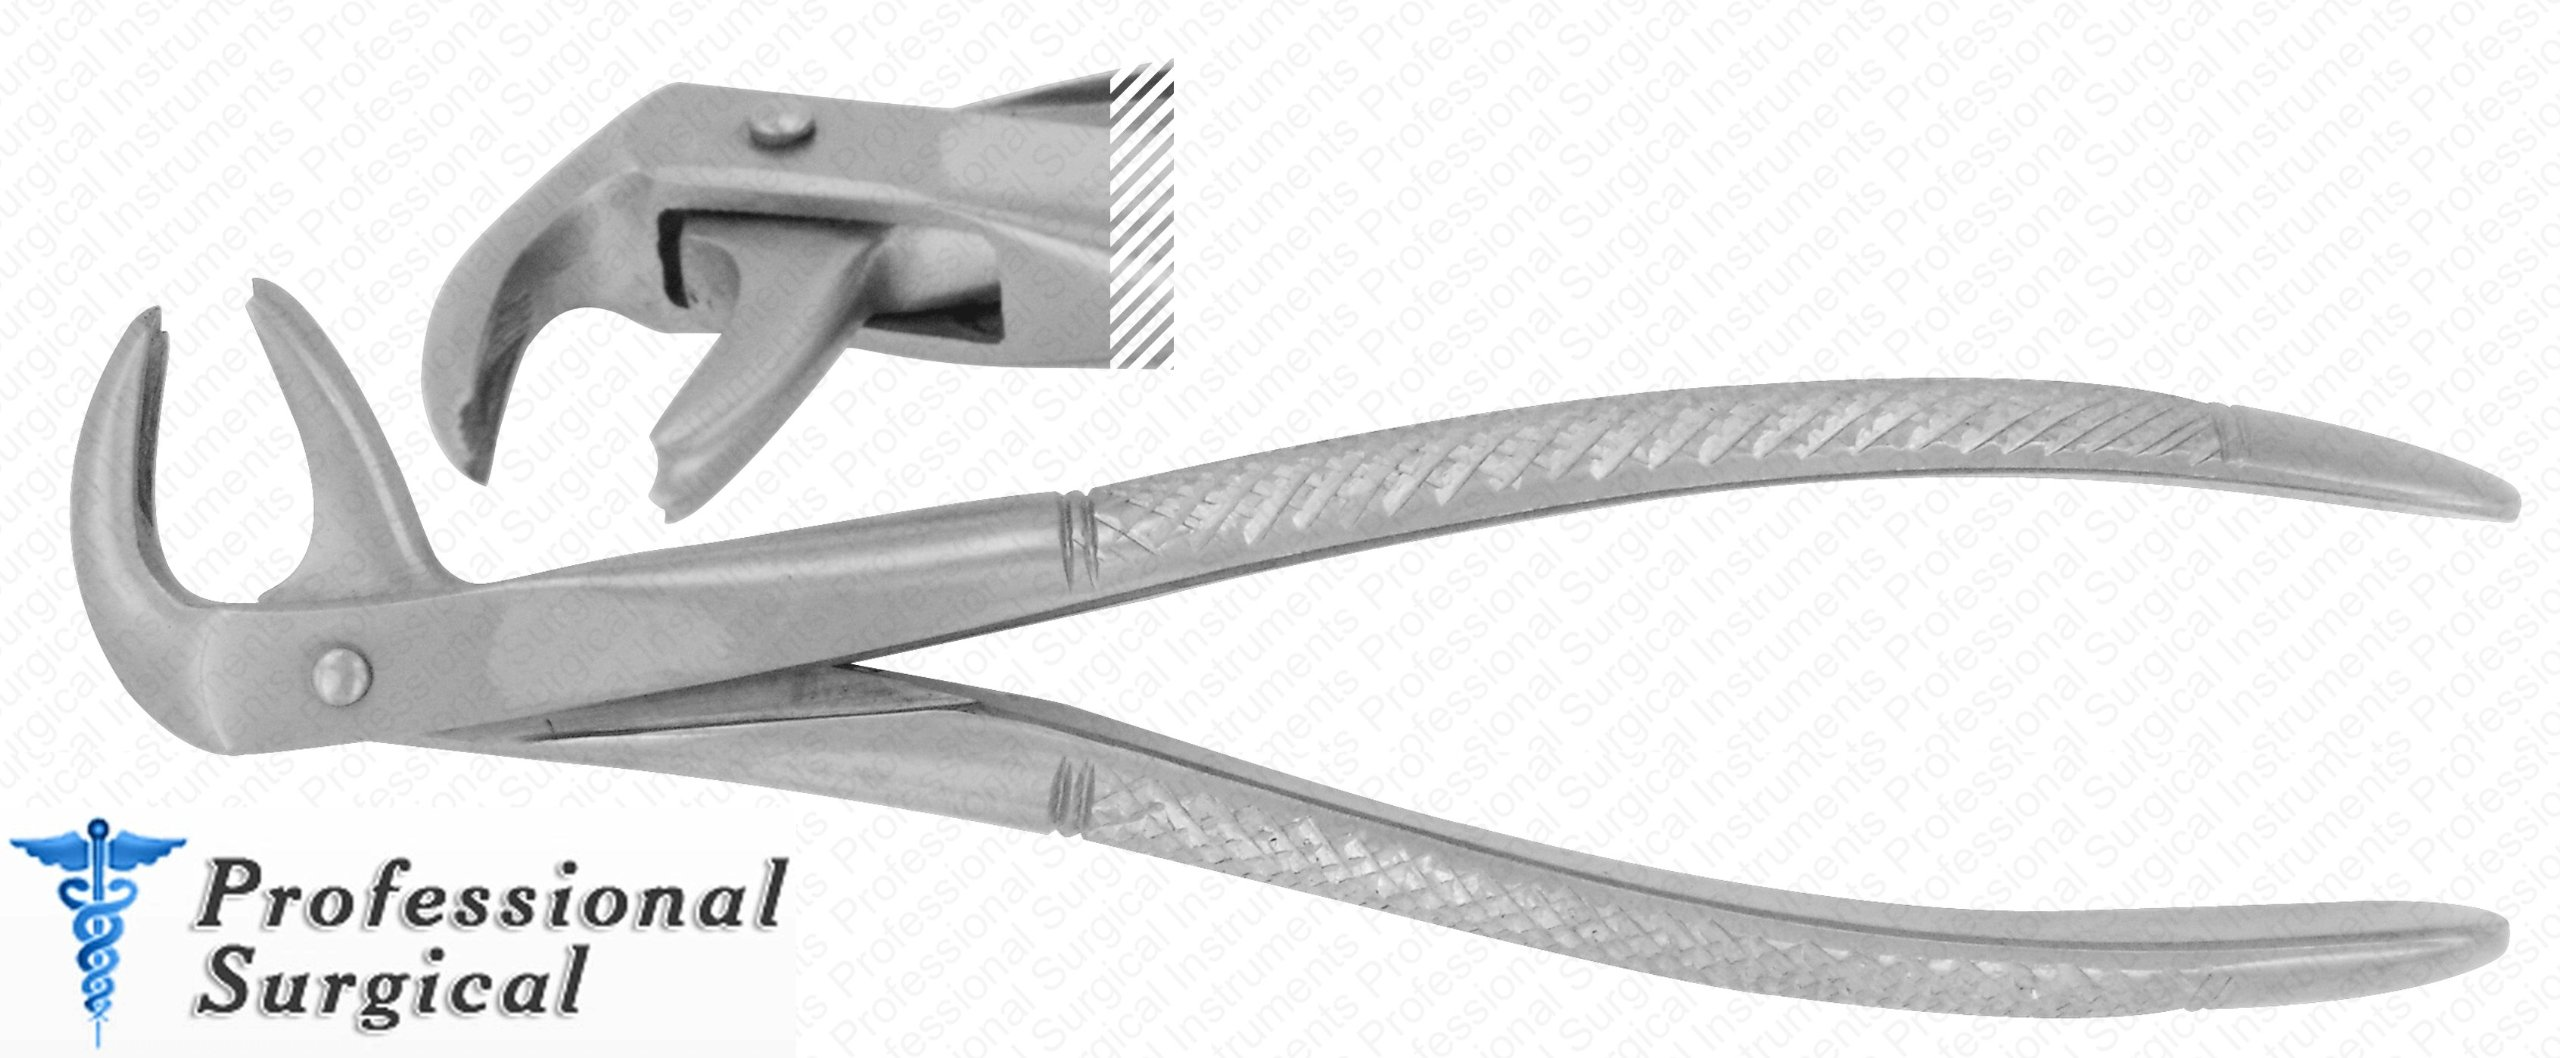 Lower Molars Universal #73 by Professional Surgical Instruments (Image #1)